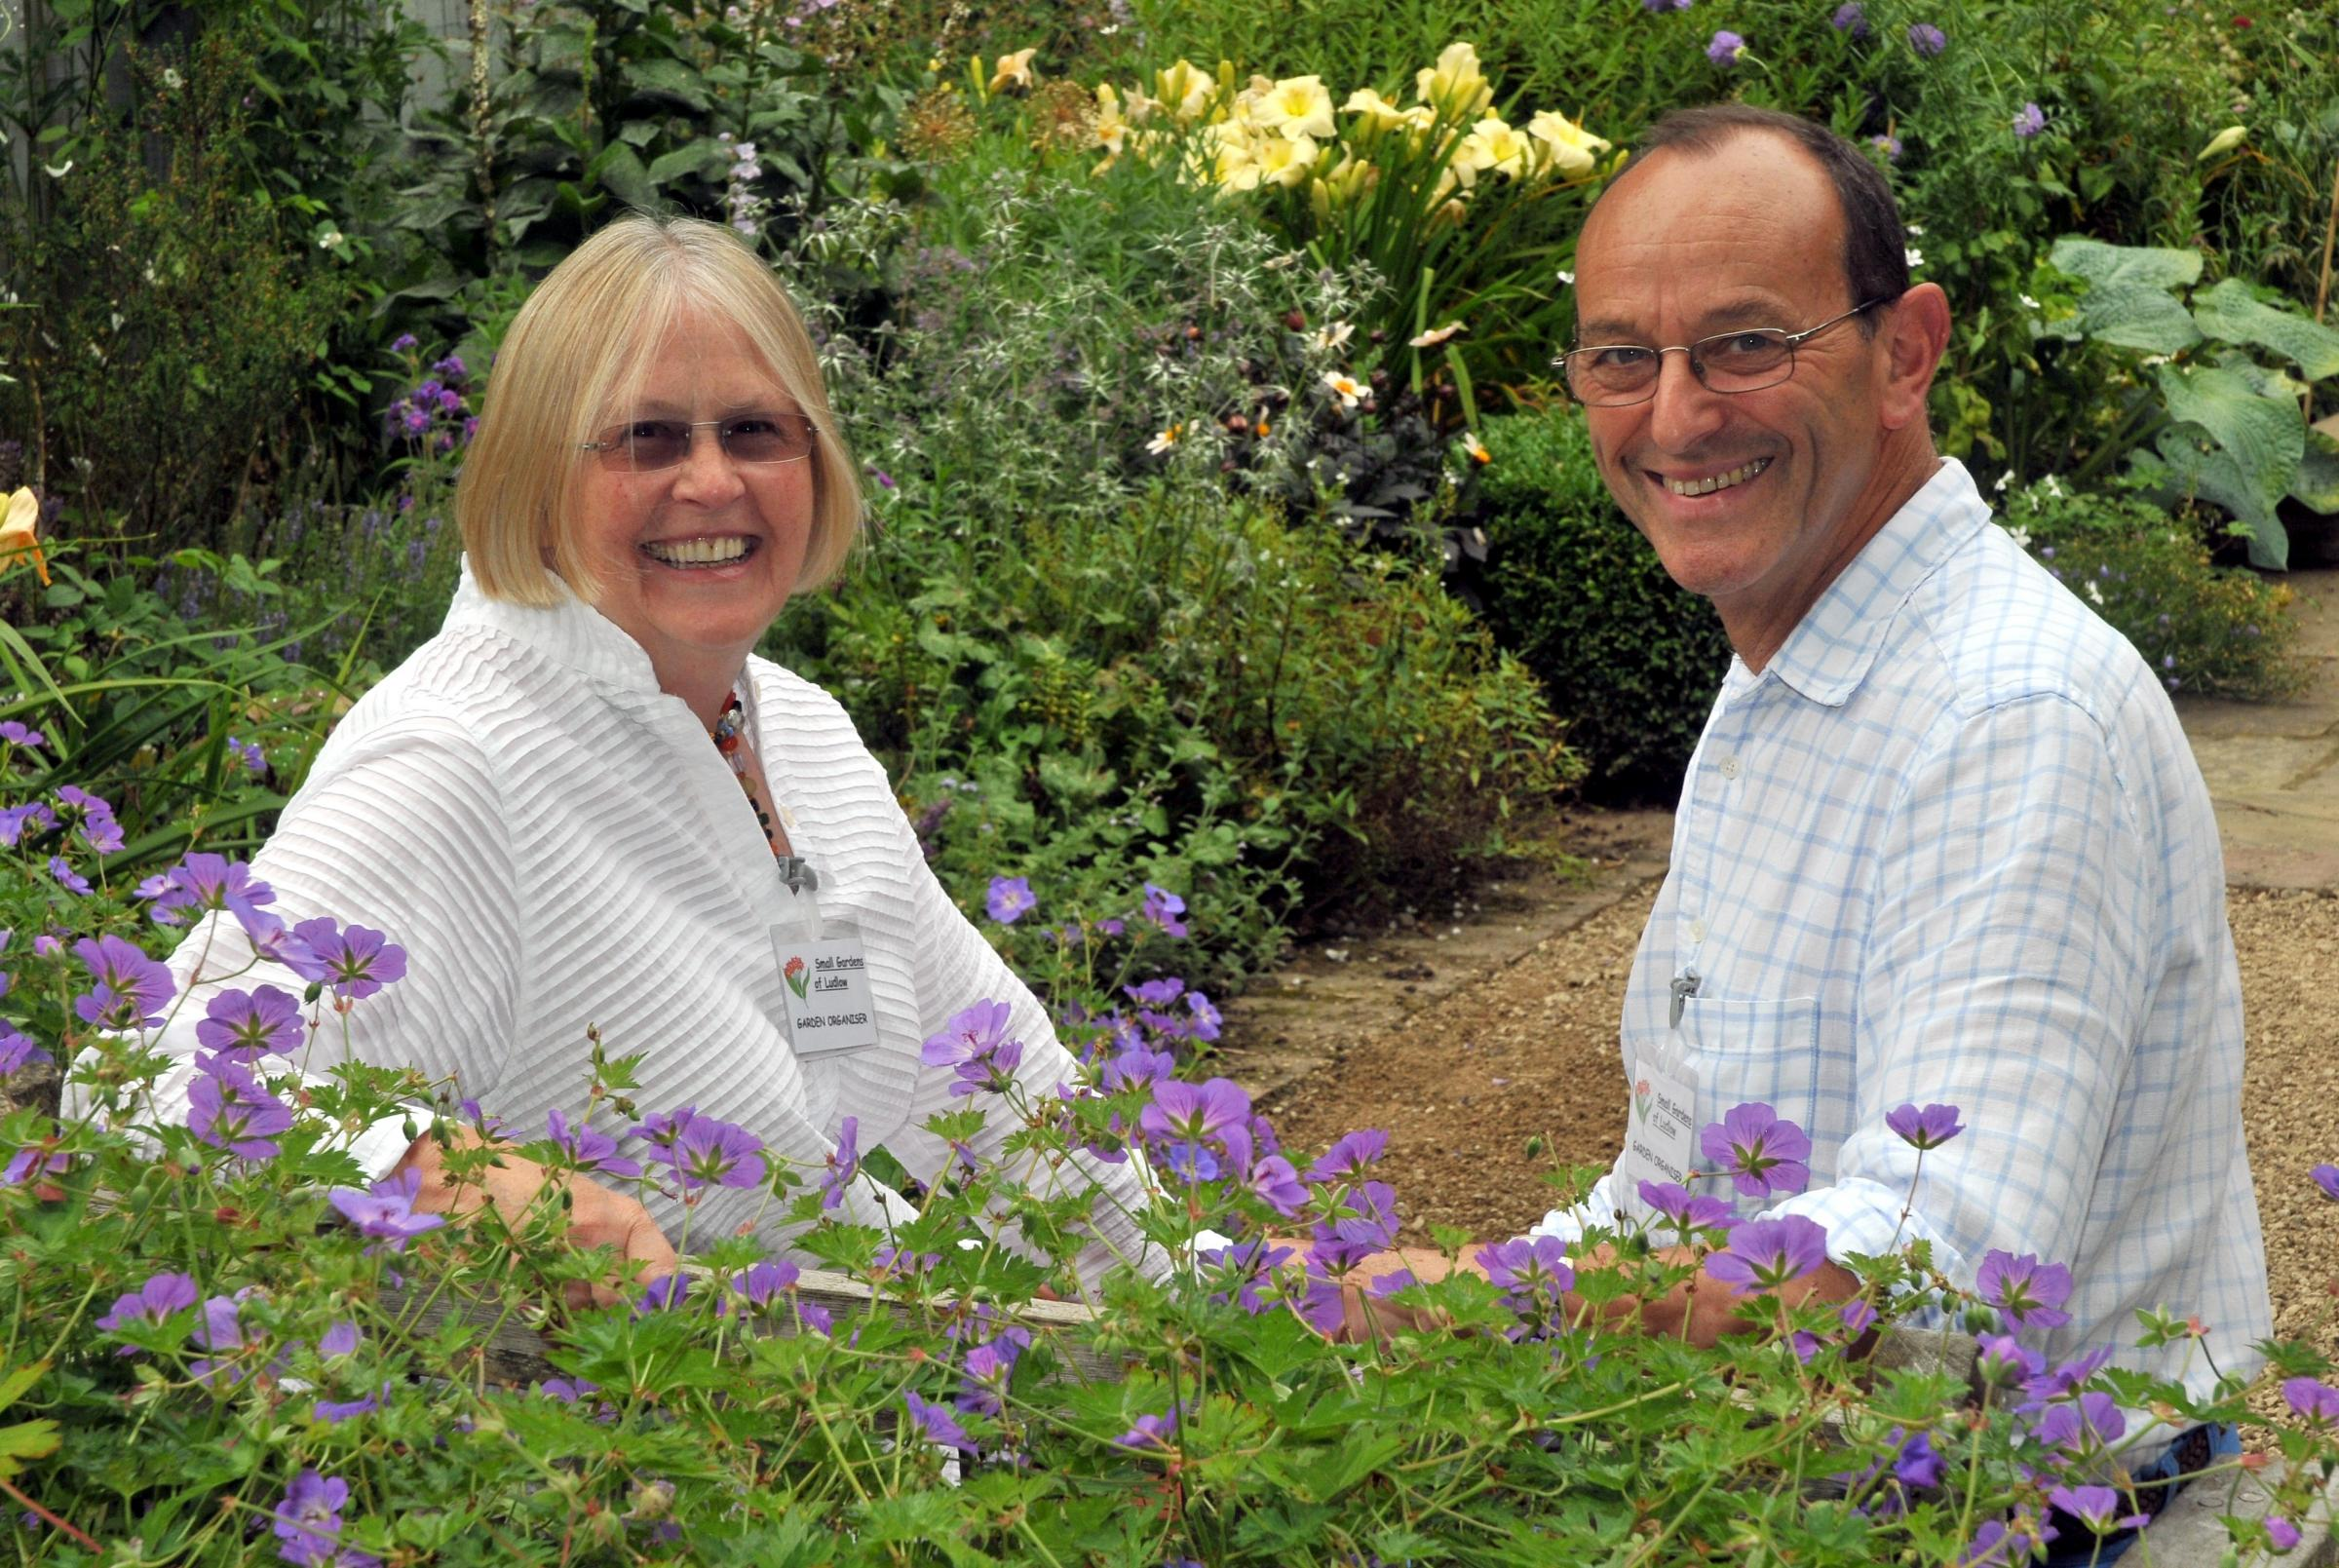 Ludlow Festival of Small Gardens brings colour to a summer weekend